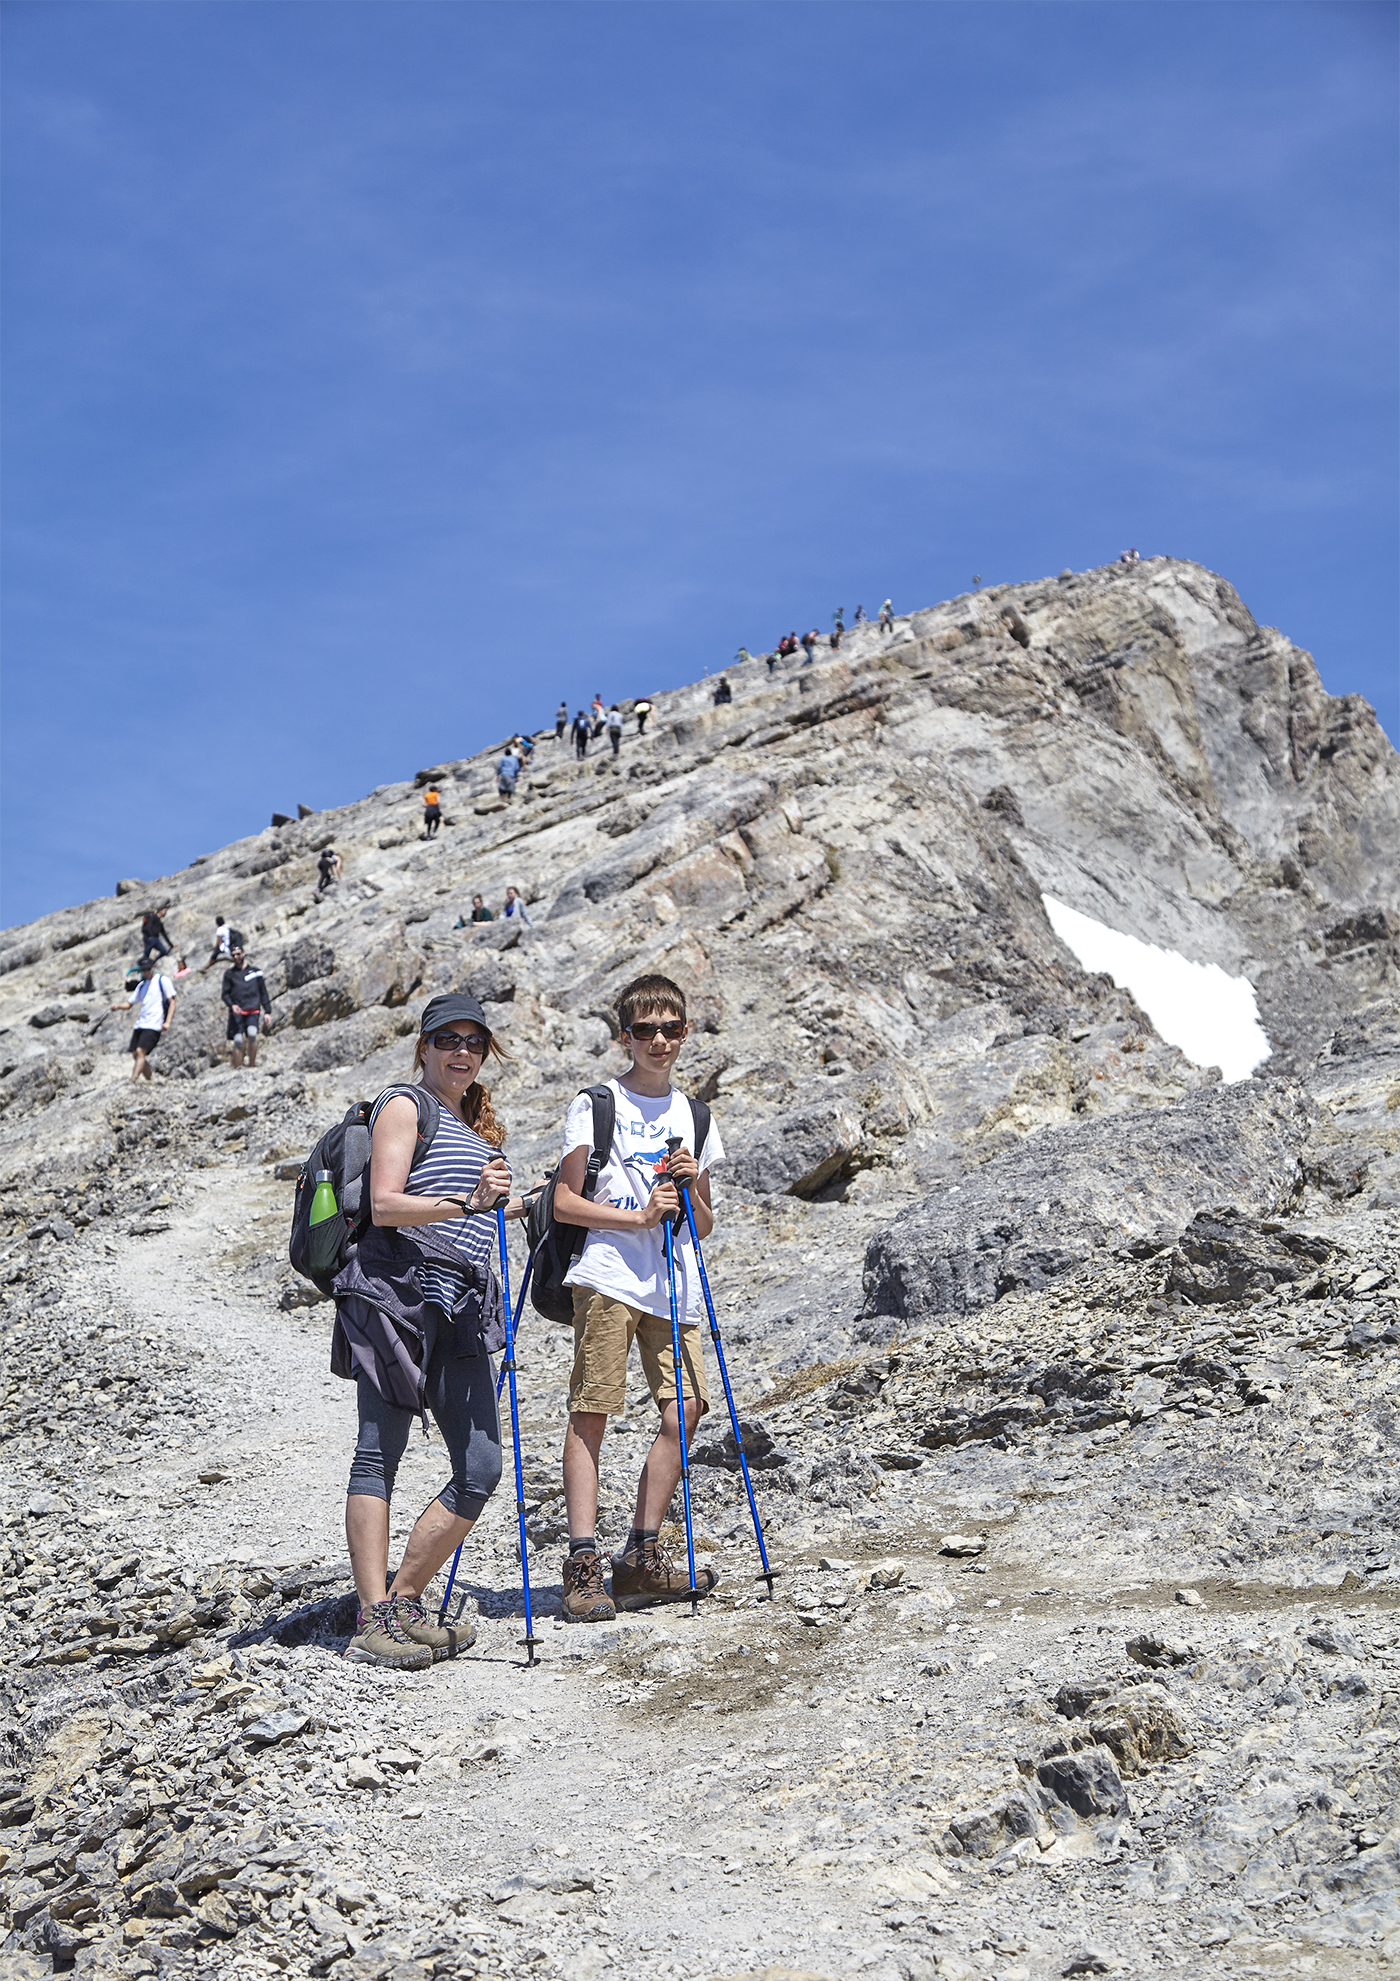 Nadien and Yuri on the ascent of Ha Ling Peak.